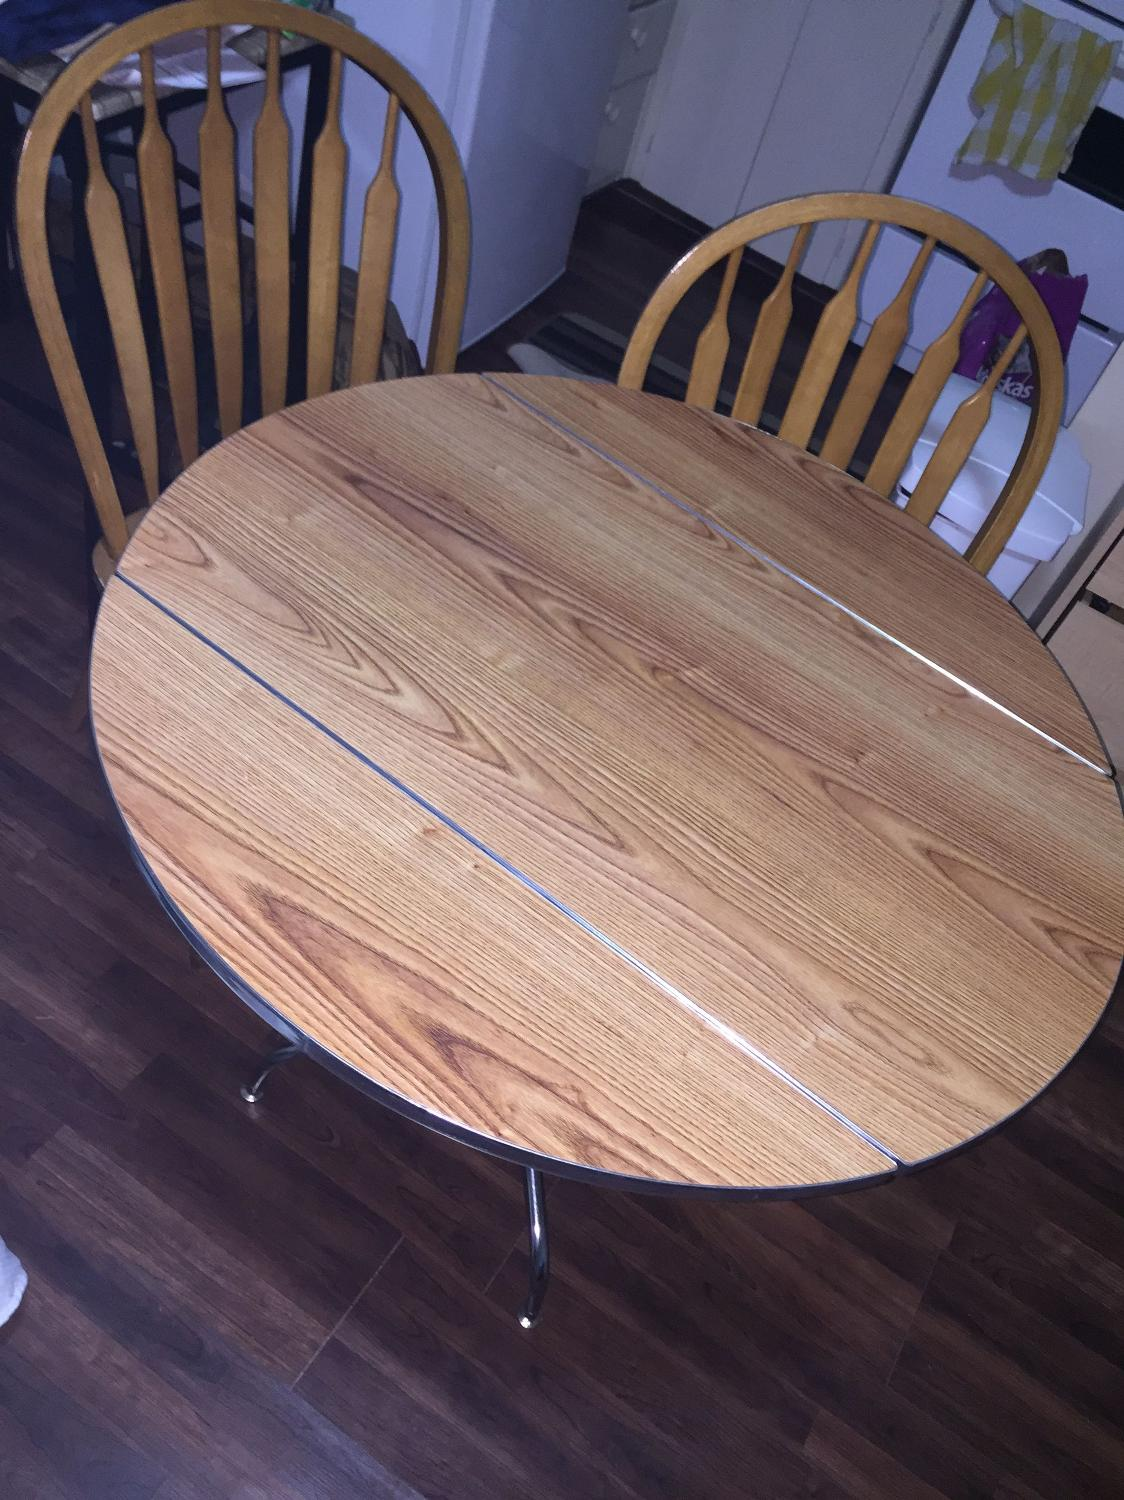 find more price drop kitchen table and chairs set for sale at up to 90 off regina sk. Black Bedroom Furniture Sets. Home Design Ideas